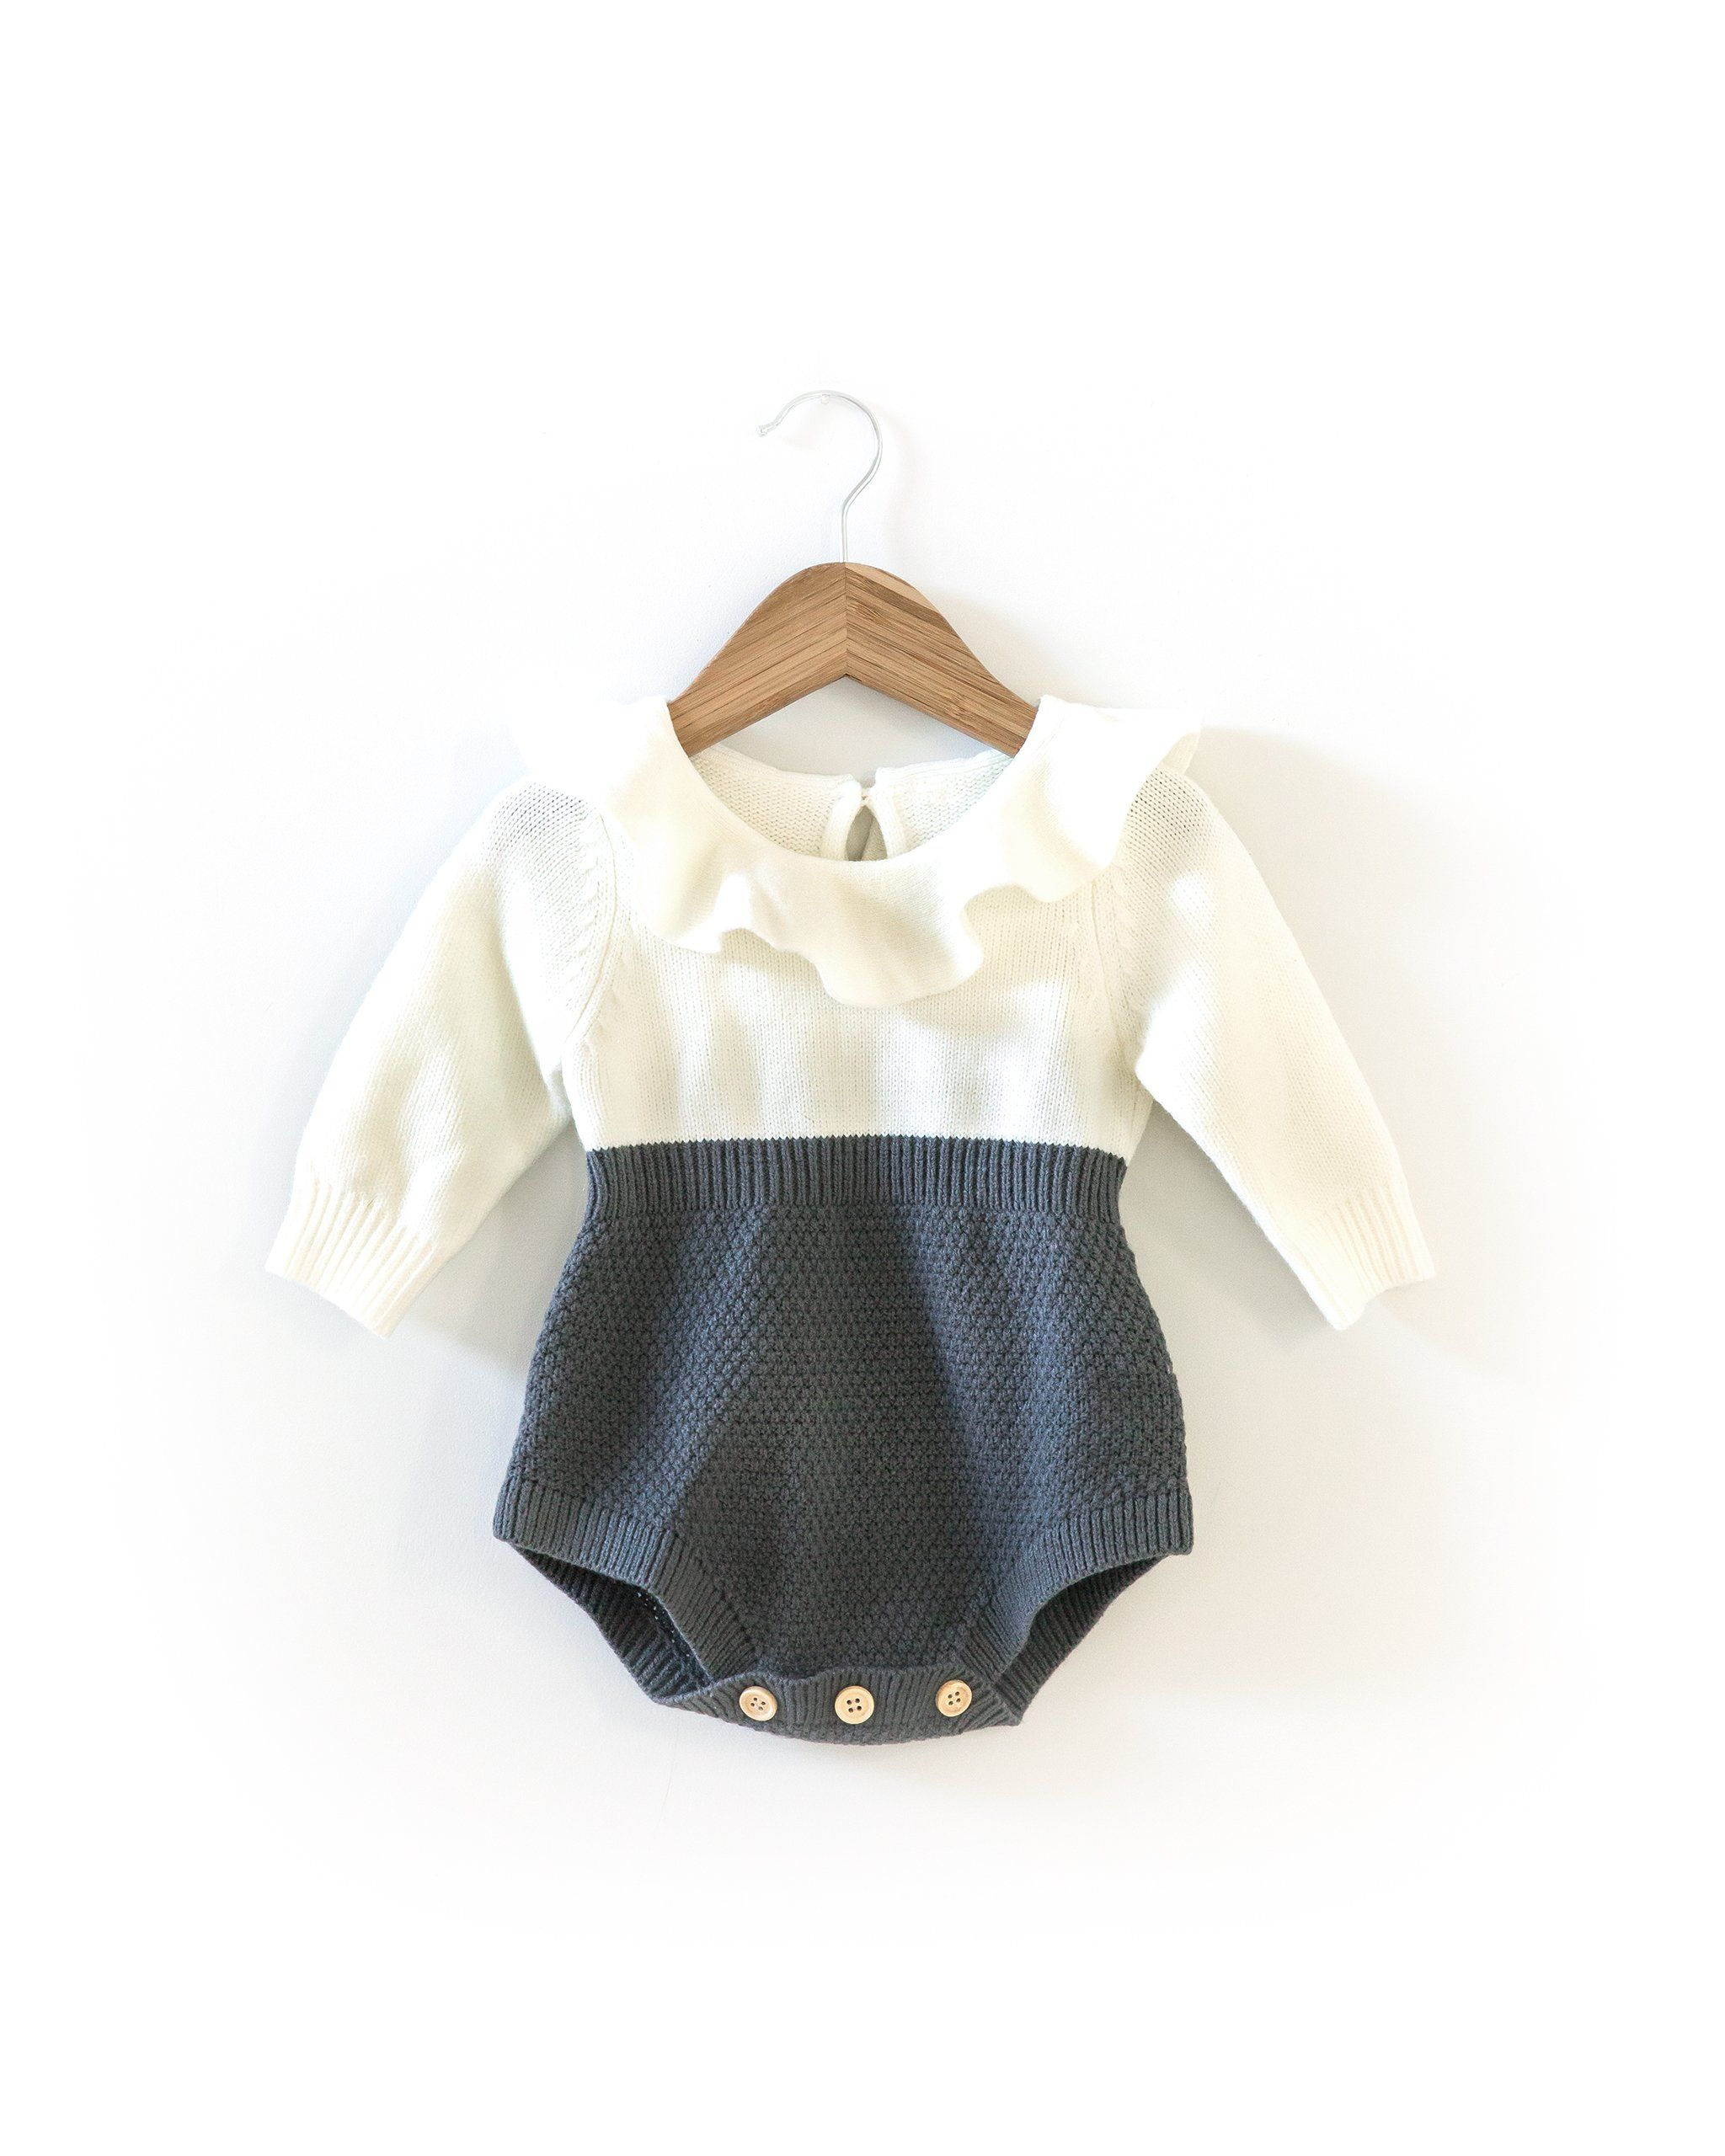 Abby Knit Romper In 2018 Products Pinterest Knitted Mom N Bab Blouse Layla White Size 5t